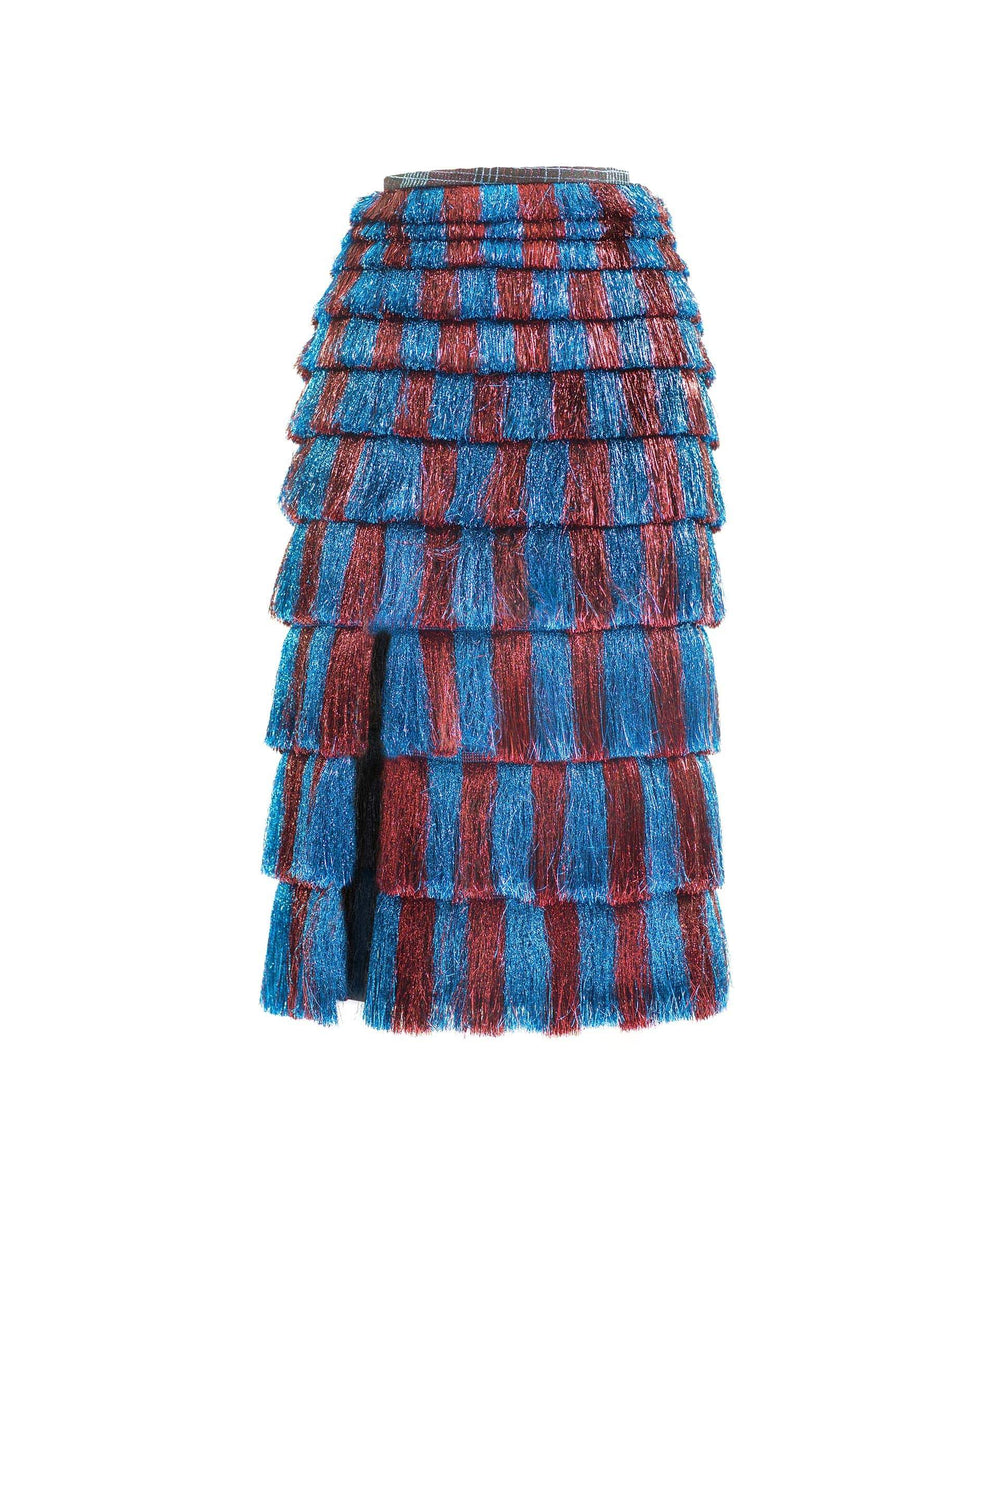 Tiered skirt with fringe